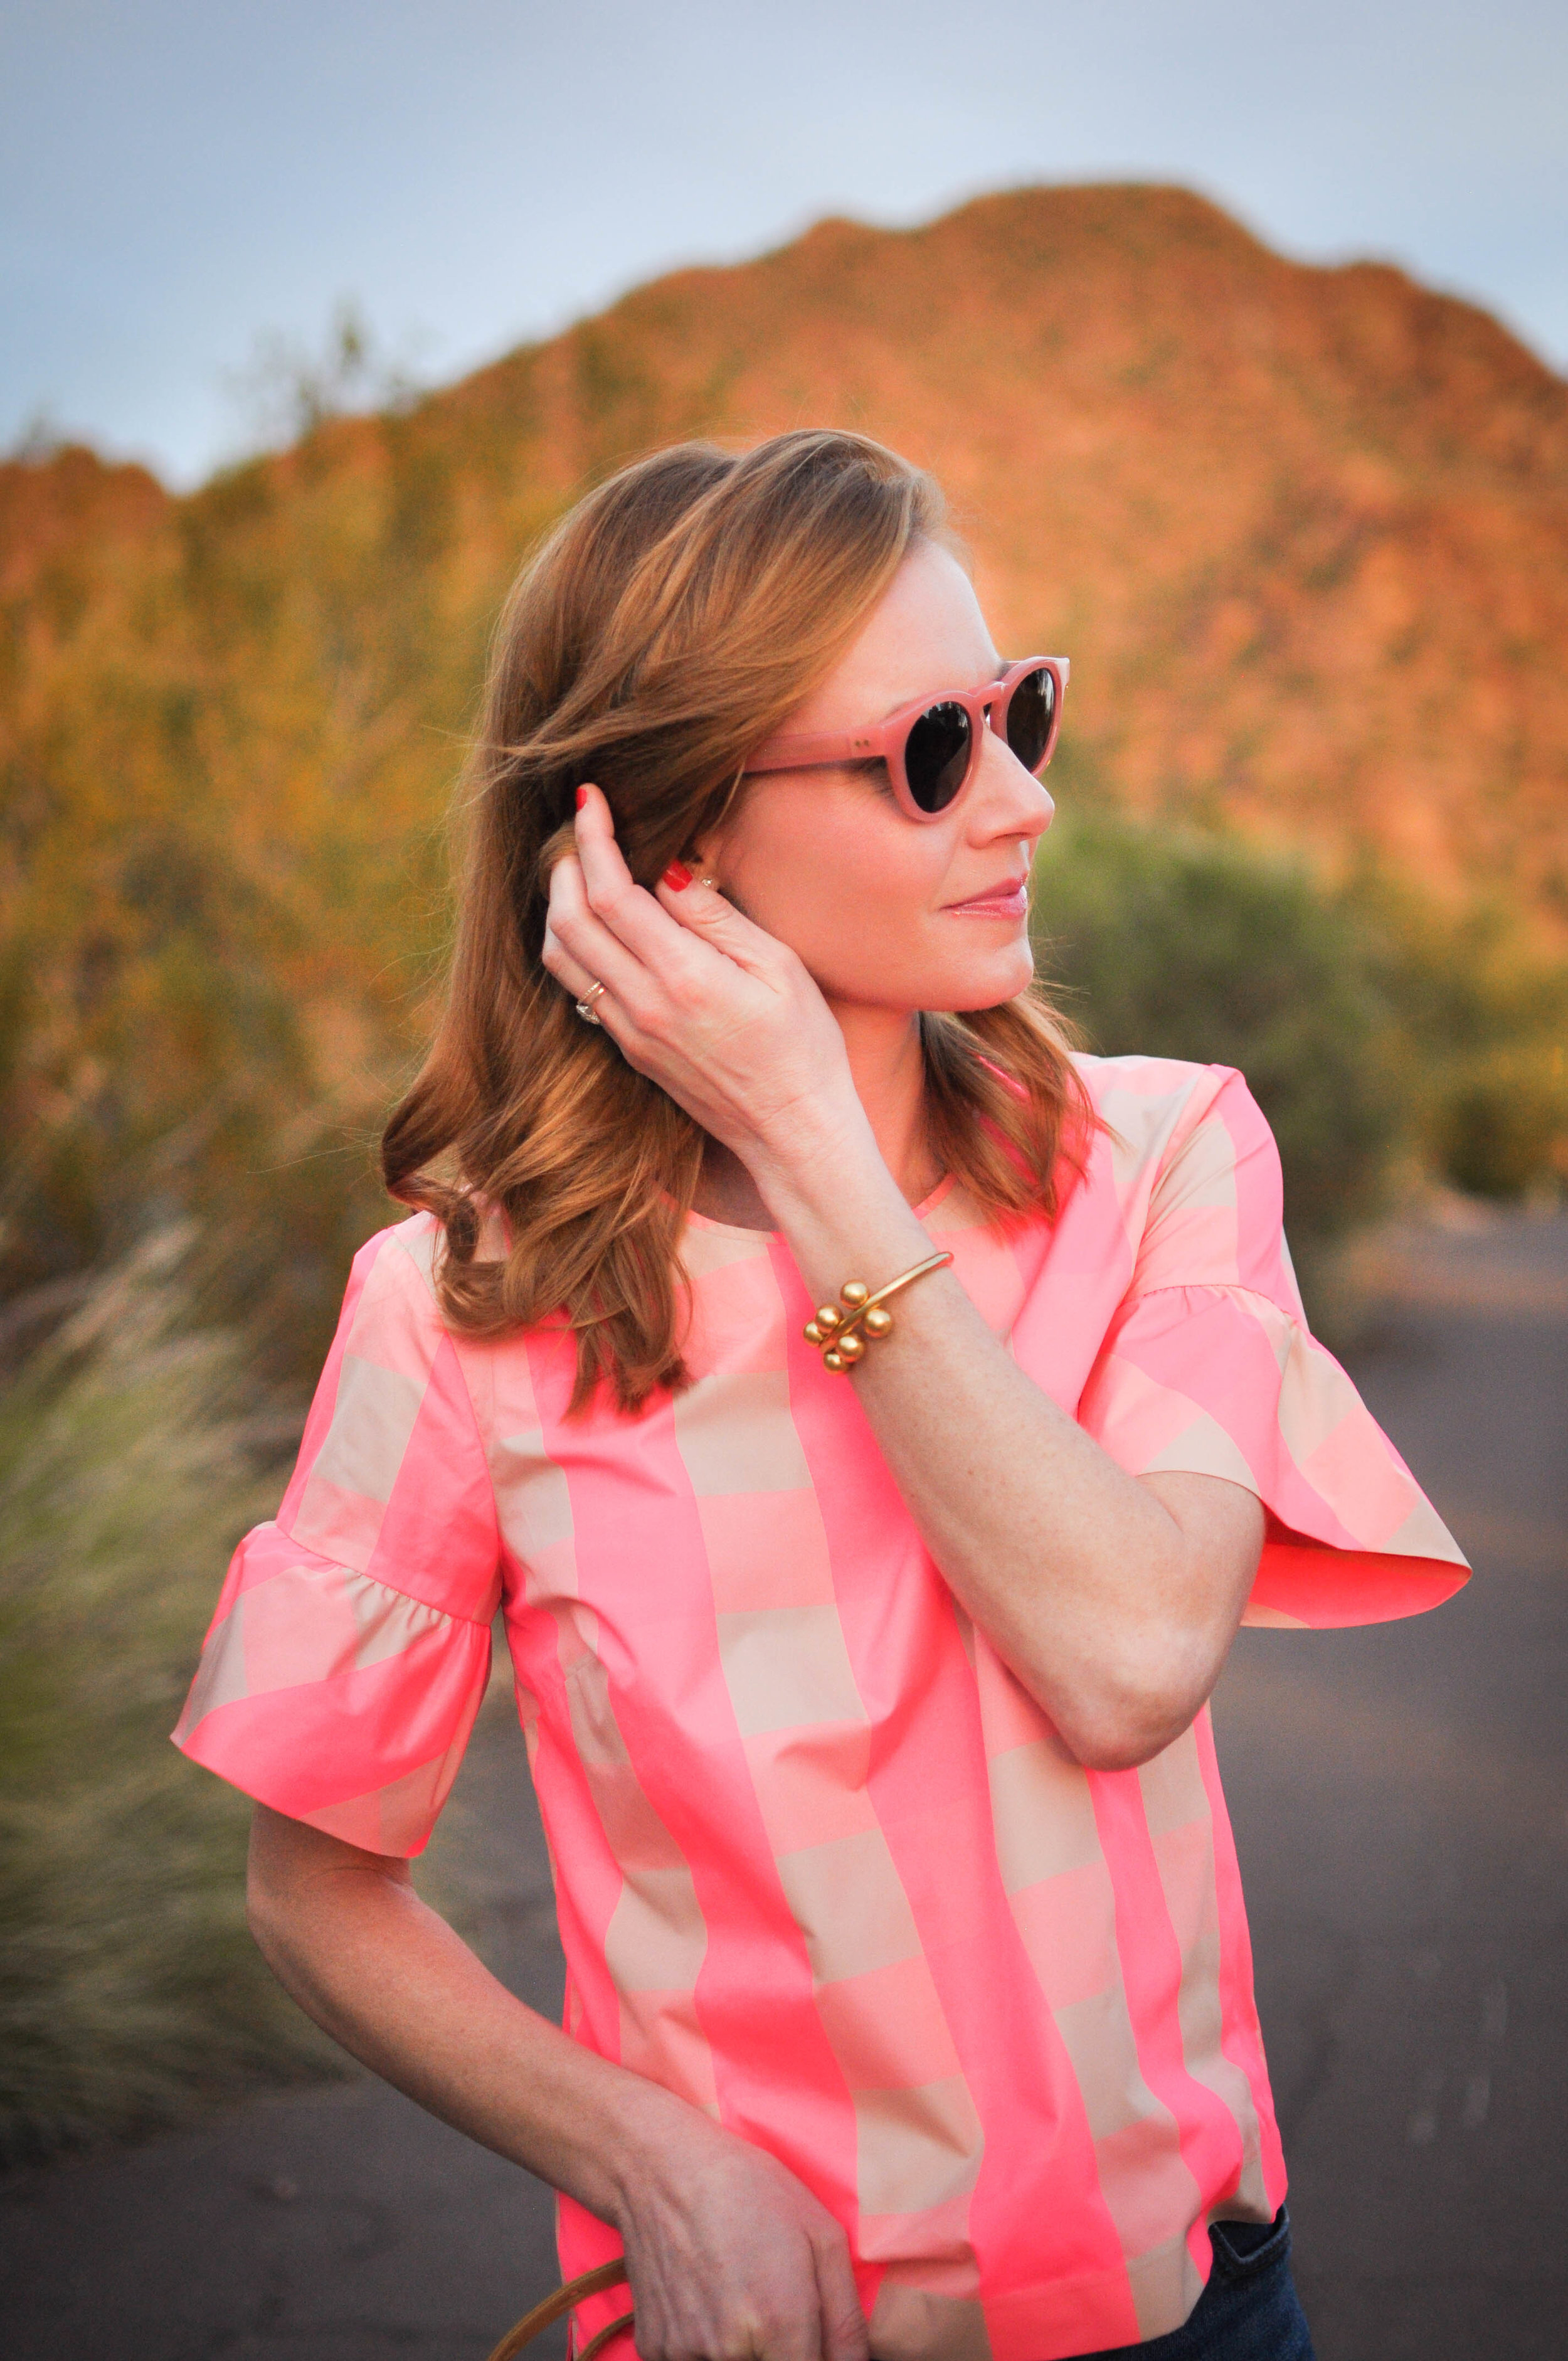 Woman in pink top and sunglasses touching hair